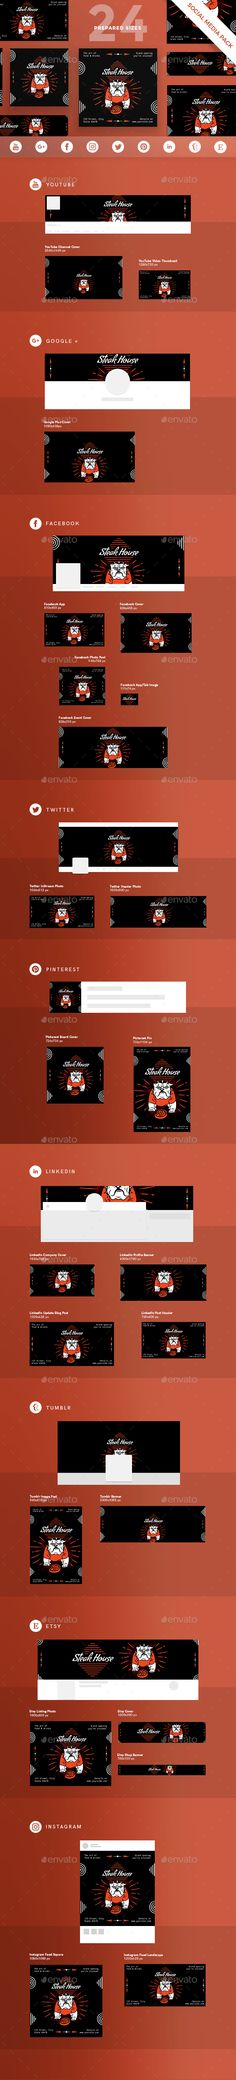 Steak House Social Media Pack The pack covers all basic design template variations for social media posts and headers to choose from and apply to your brand. Modern, clean and customizable, they are fully optimized for social platforms and ideal for promoting products, brands and businesses.